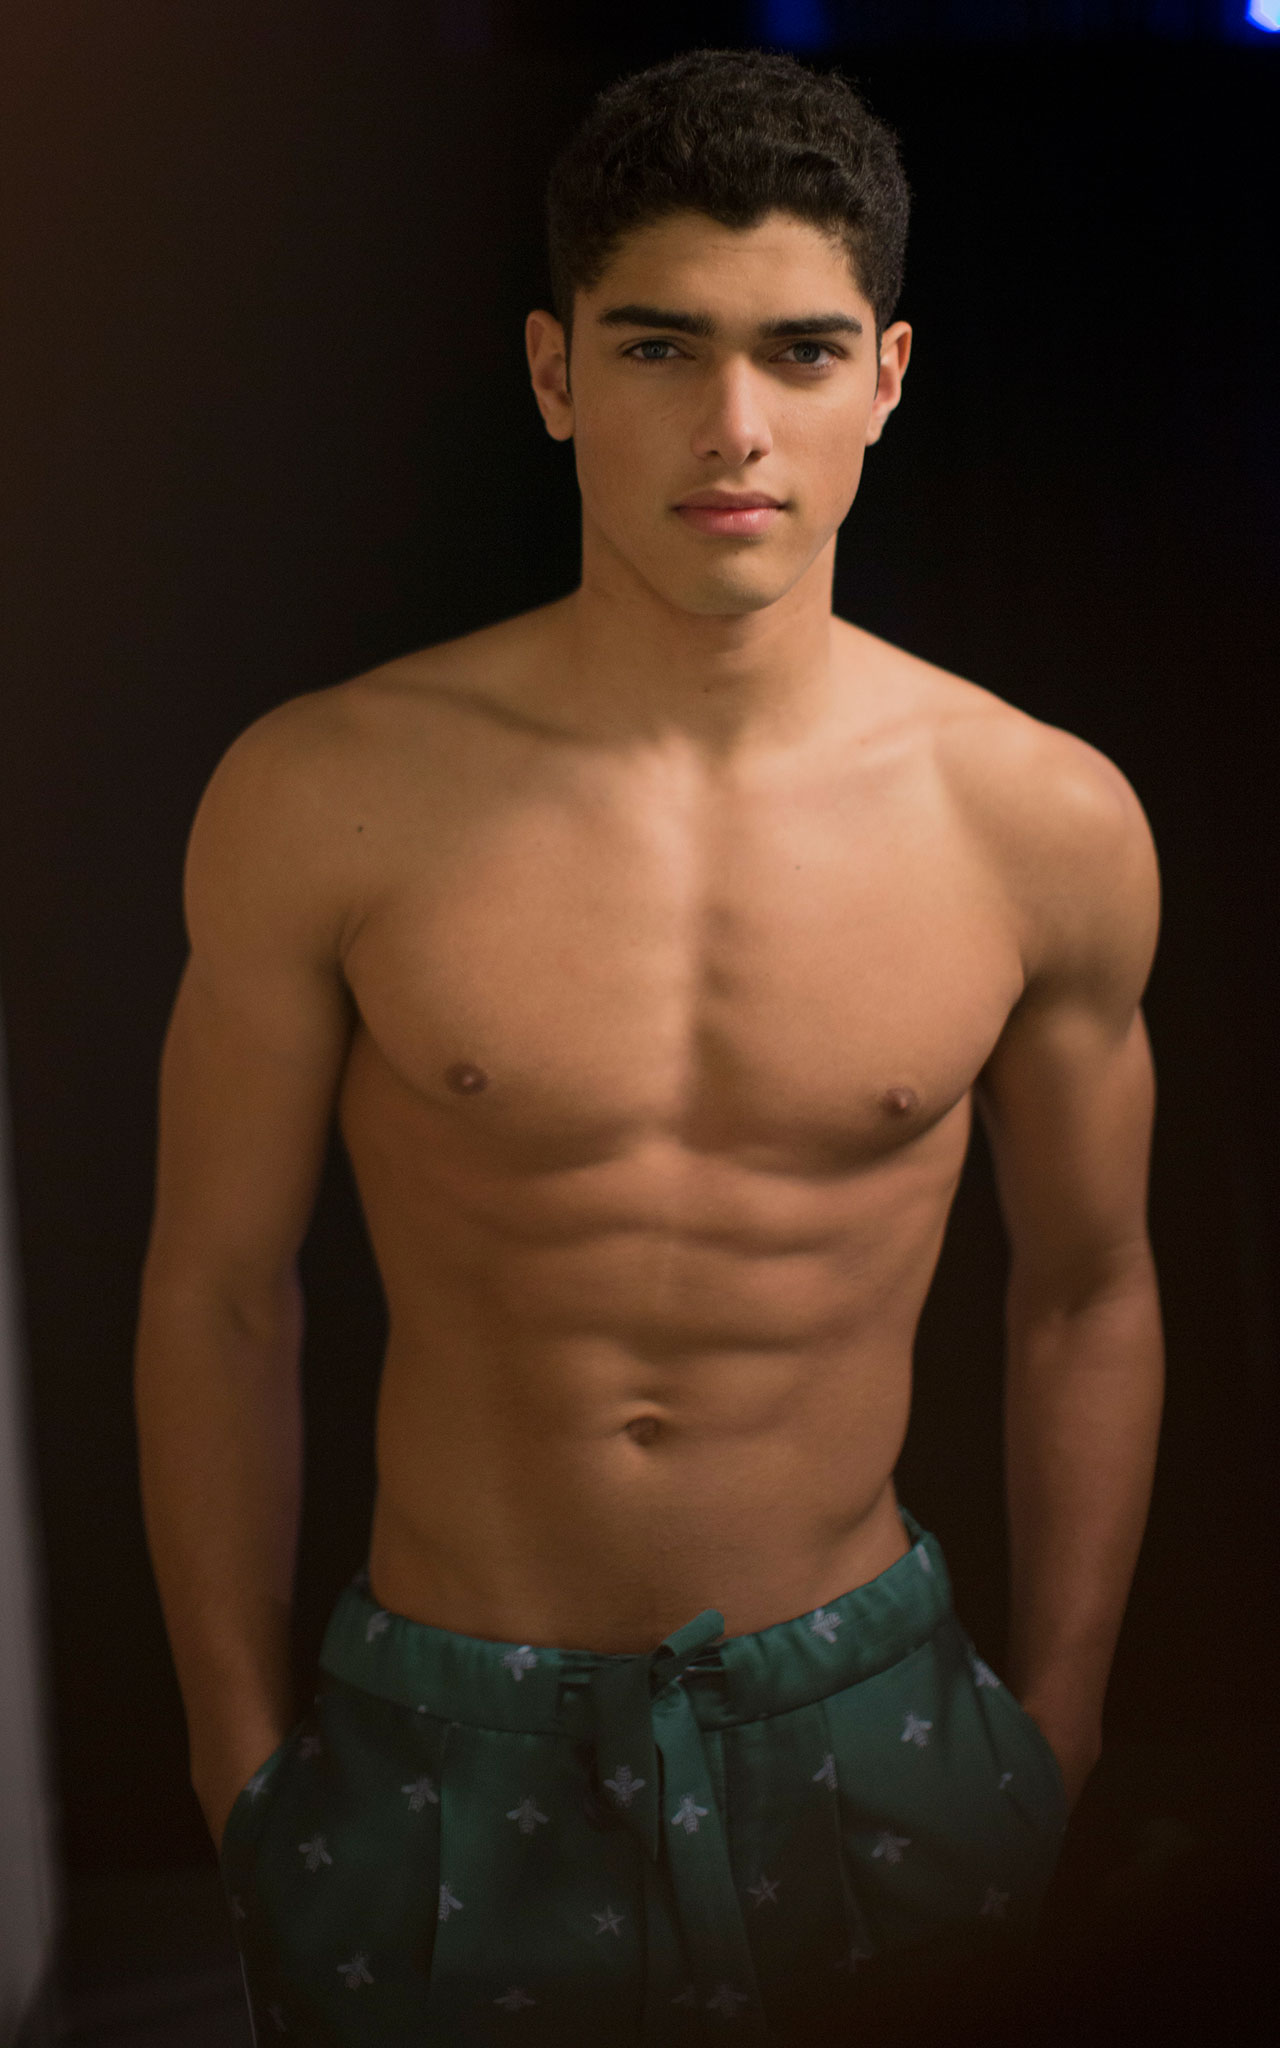 Taylor lautner shirtless Pictures - Home Facebook